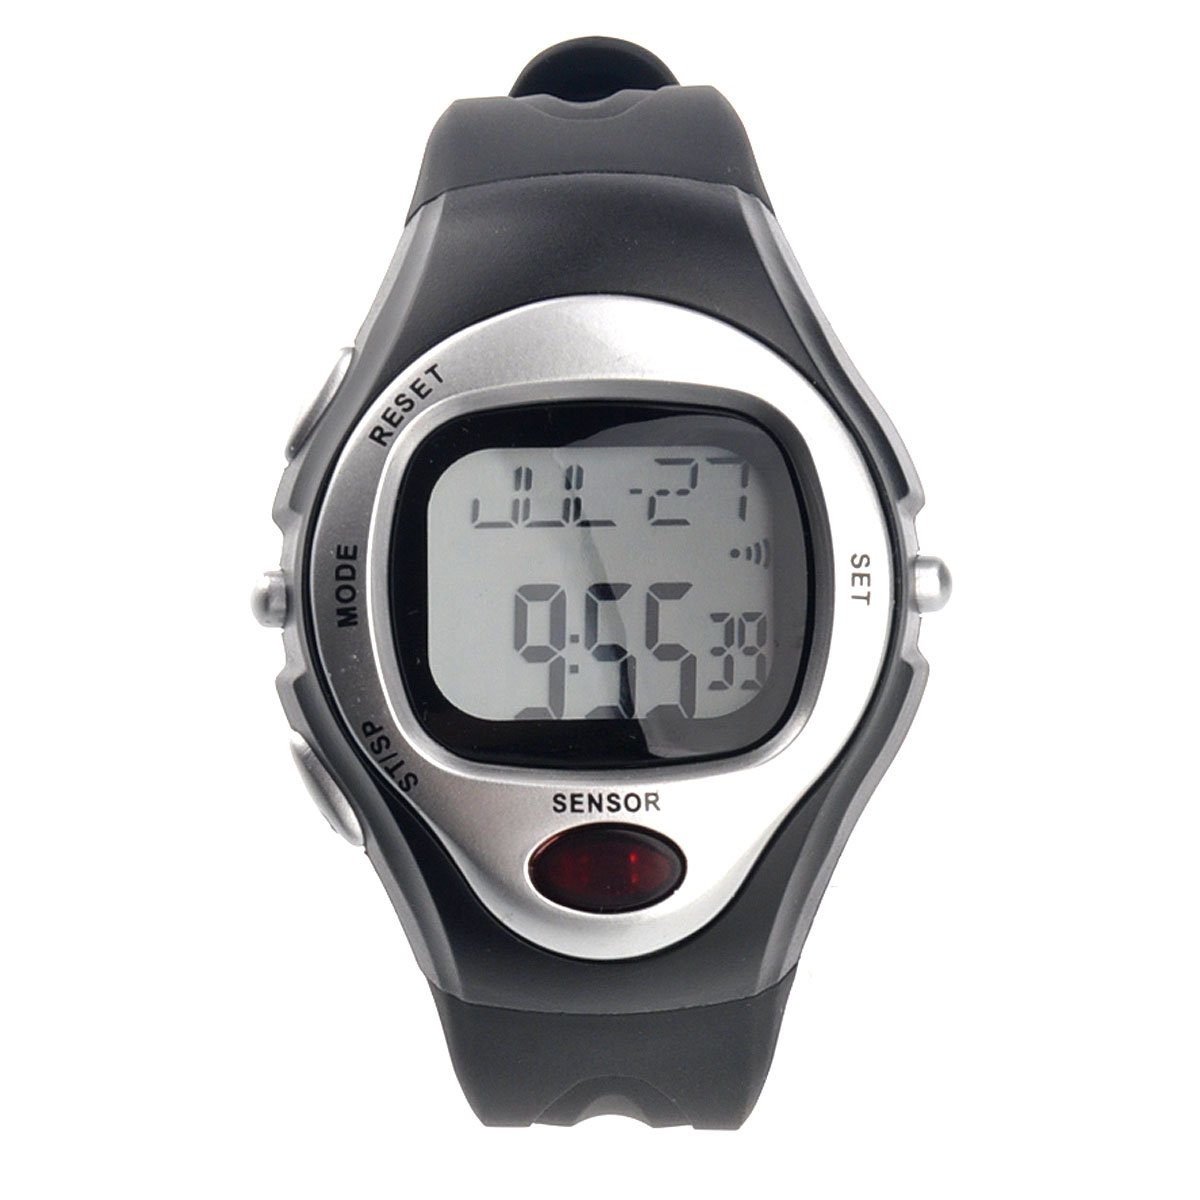 Sport Stop Watch Calorie Counter Heart Rate Monitor New